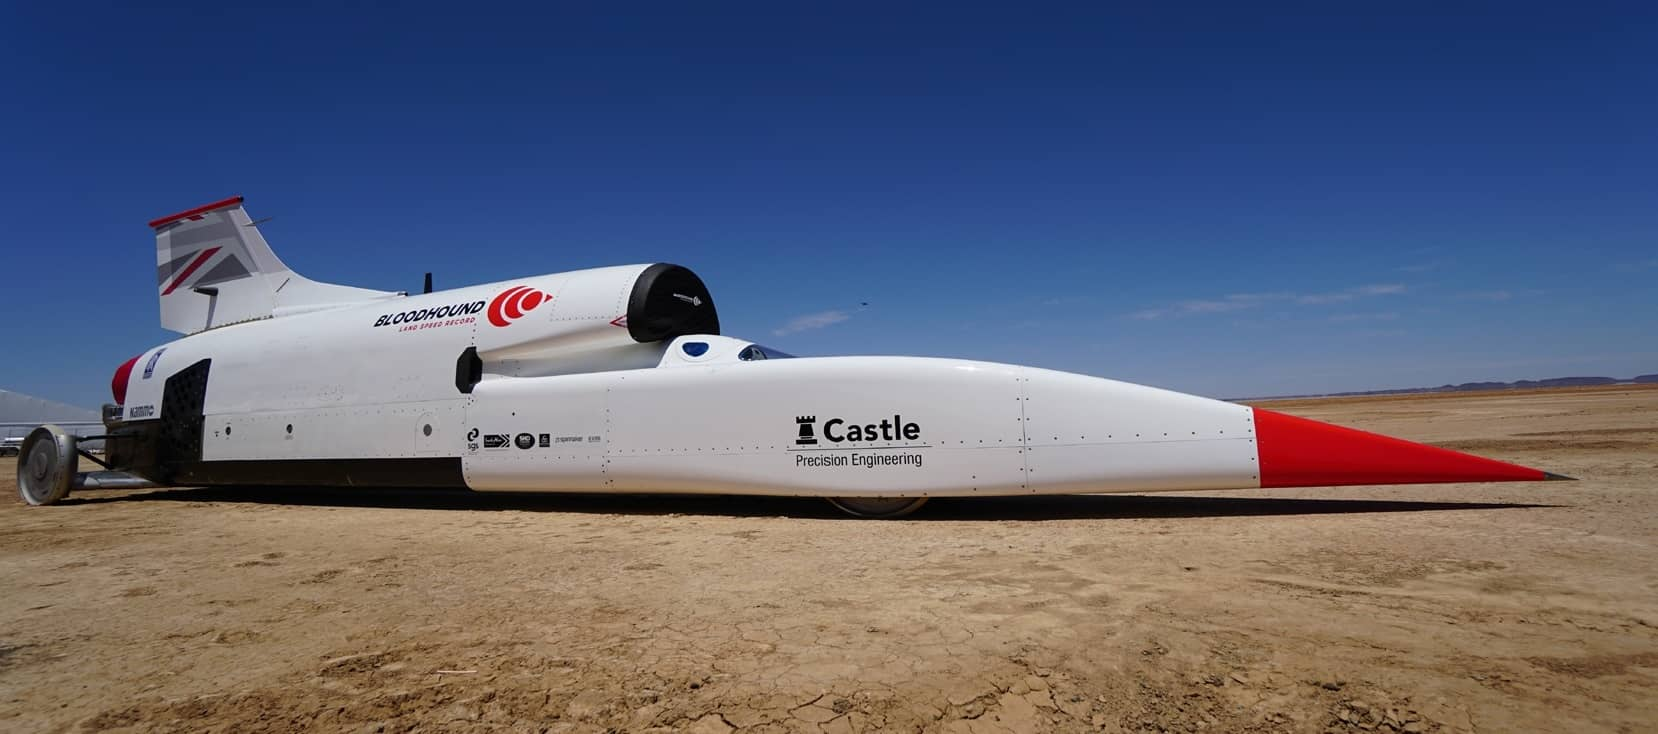 Bloodhound LSR Team Lands In Desert And Gears Up For High Speed Runs